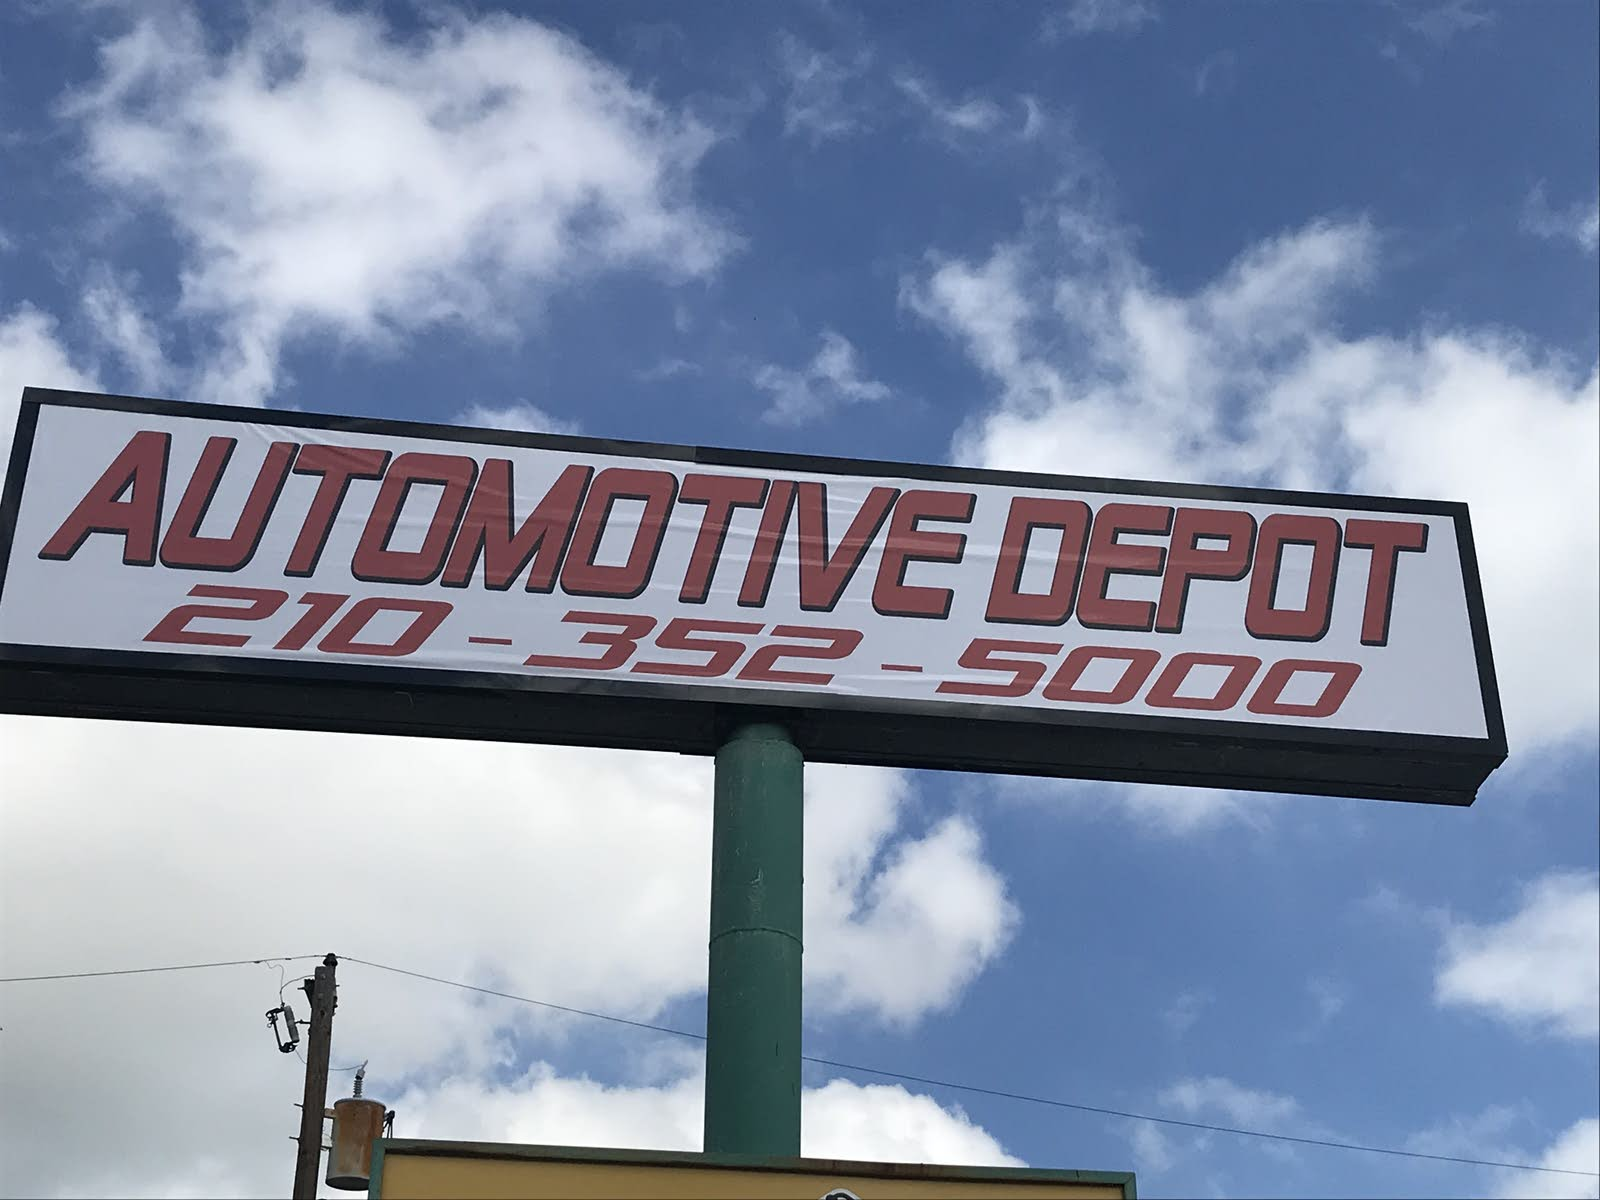 Automotive Depot San Antonio Tx Read Consumer Reviews